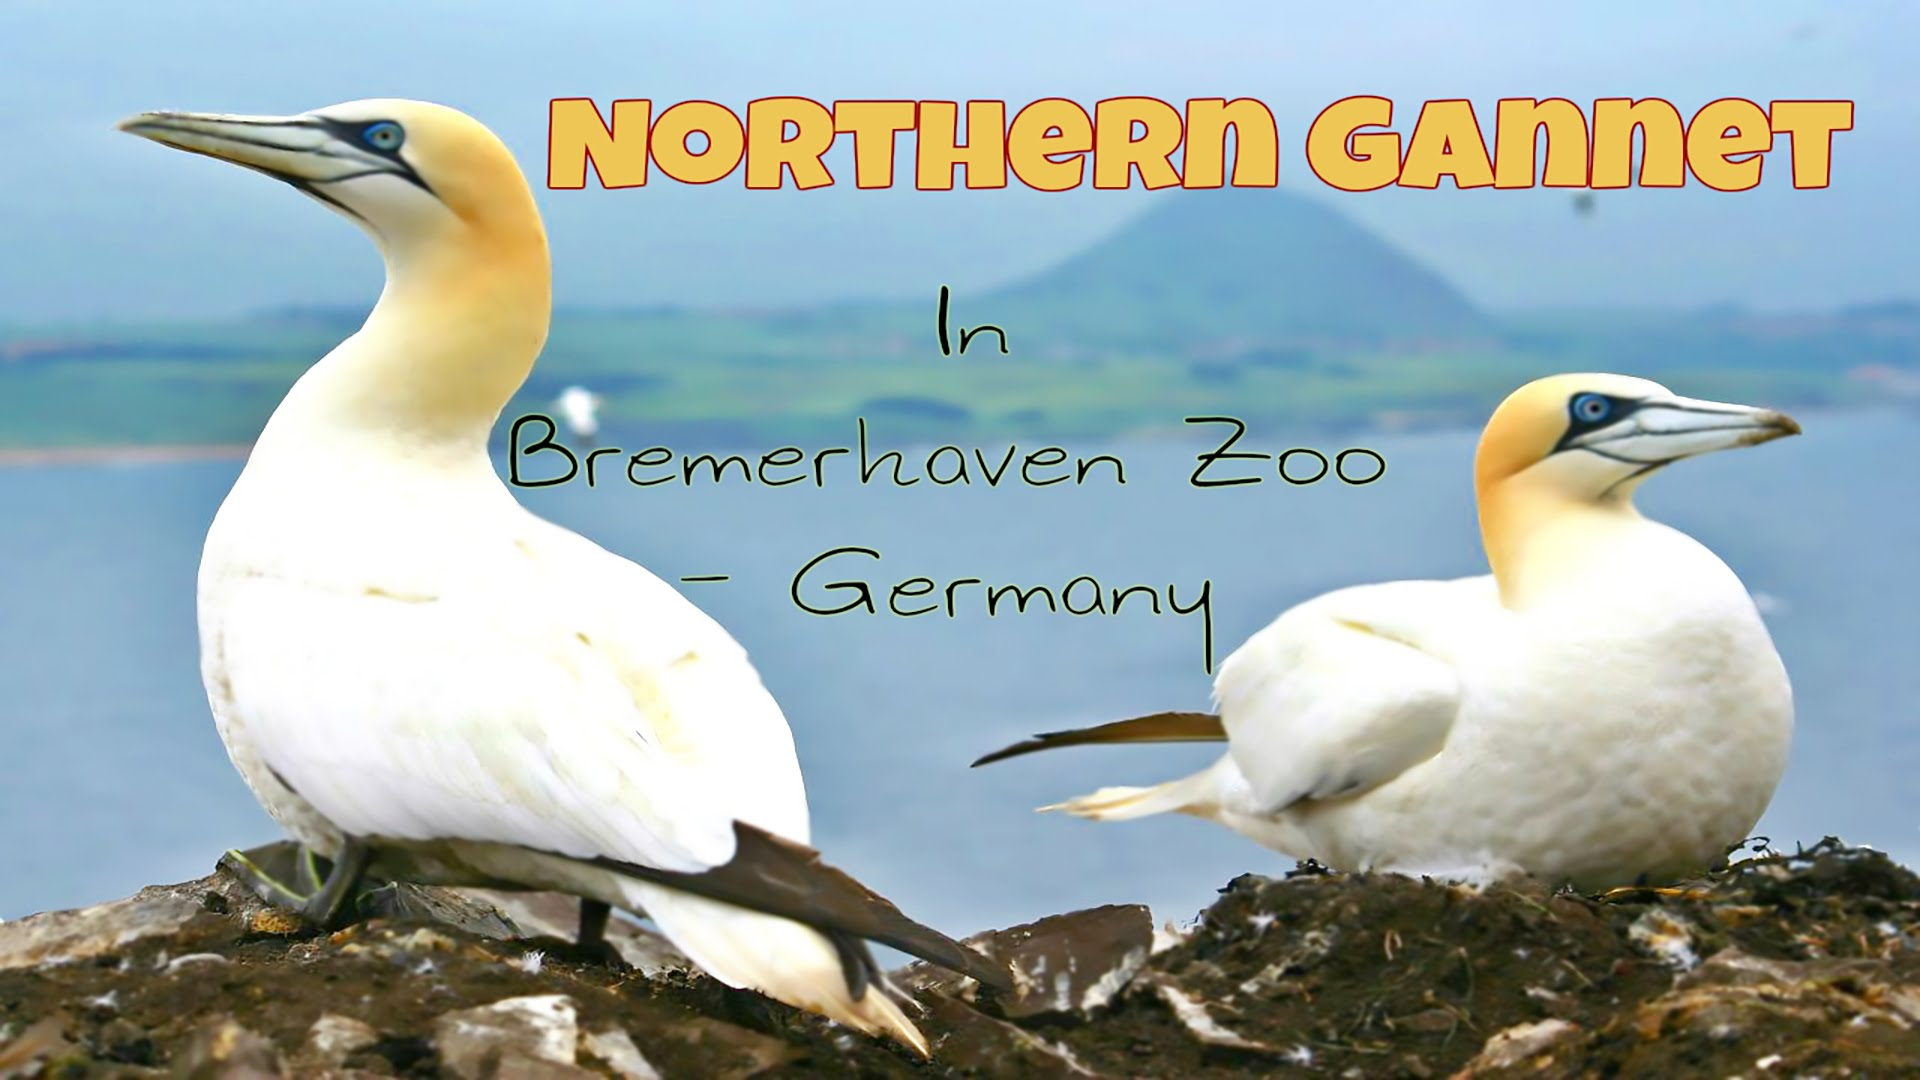 Northern Gannet In Bremerhaven Zoo - Germany - YouTube